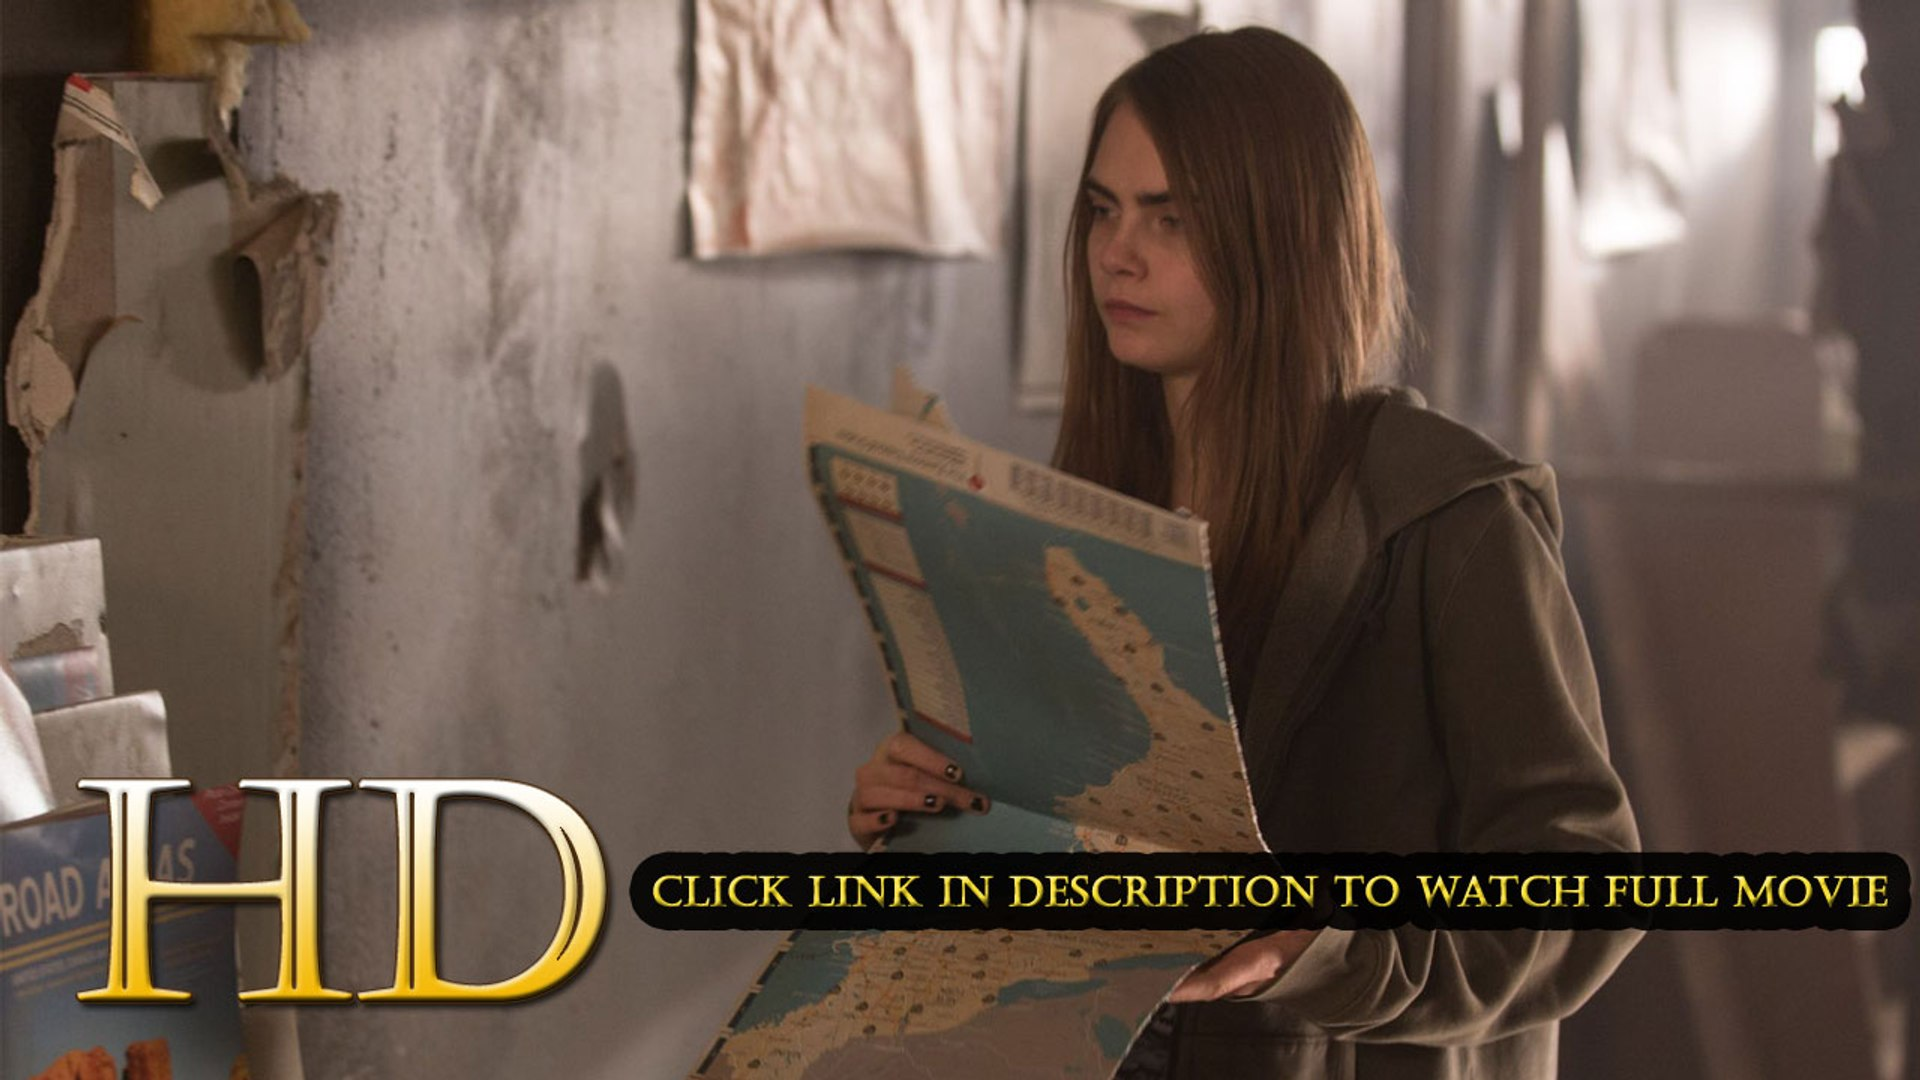 The Trip to Spain Full Movie Watch The Trip to Spain Full Movie Online The Trip to Spain Full Movie